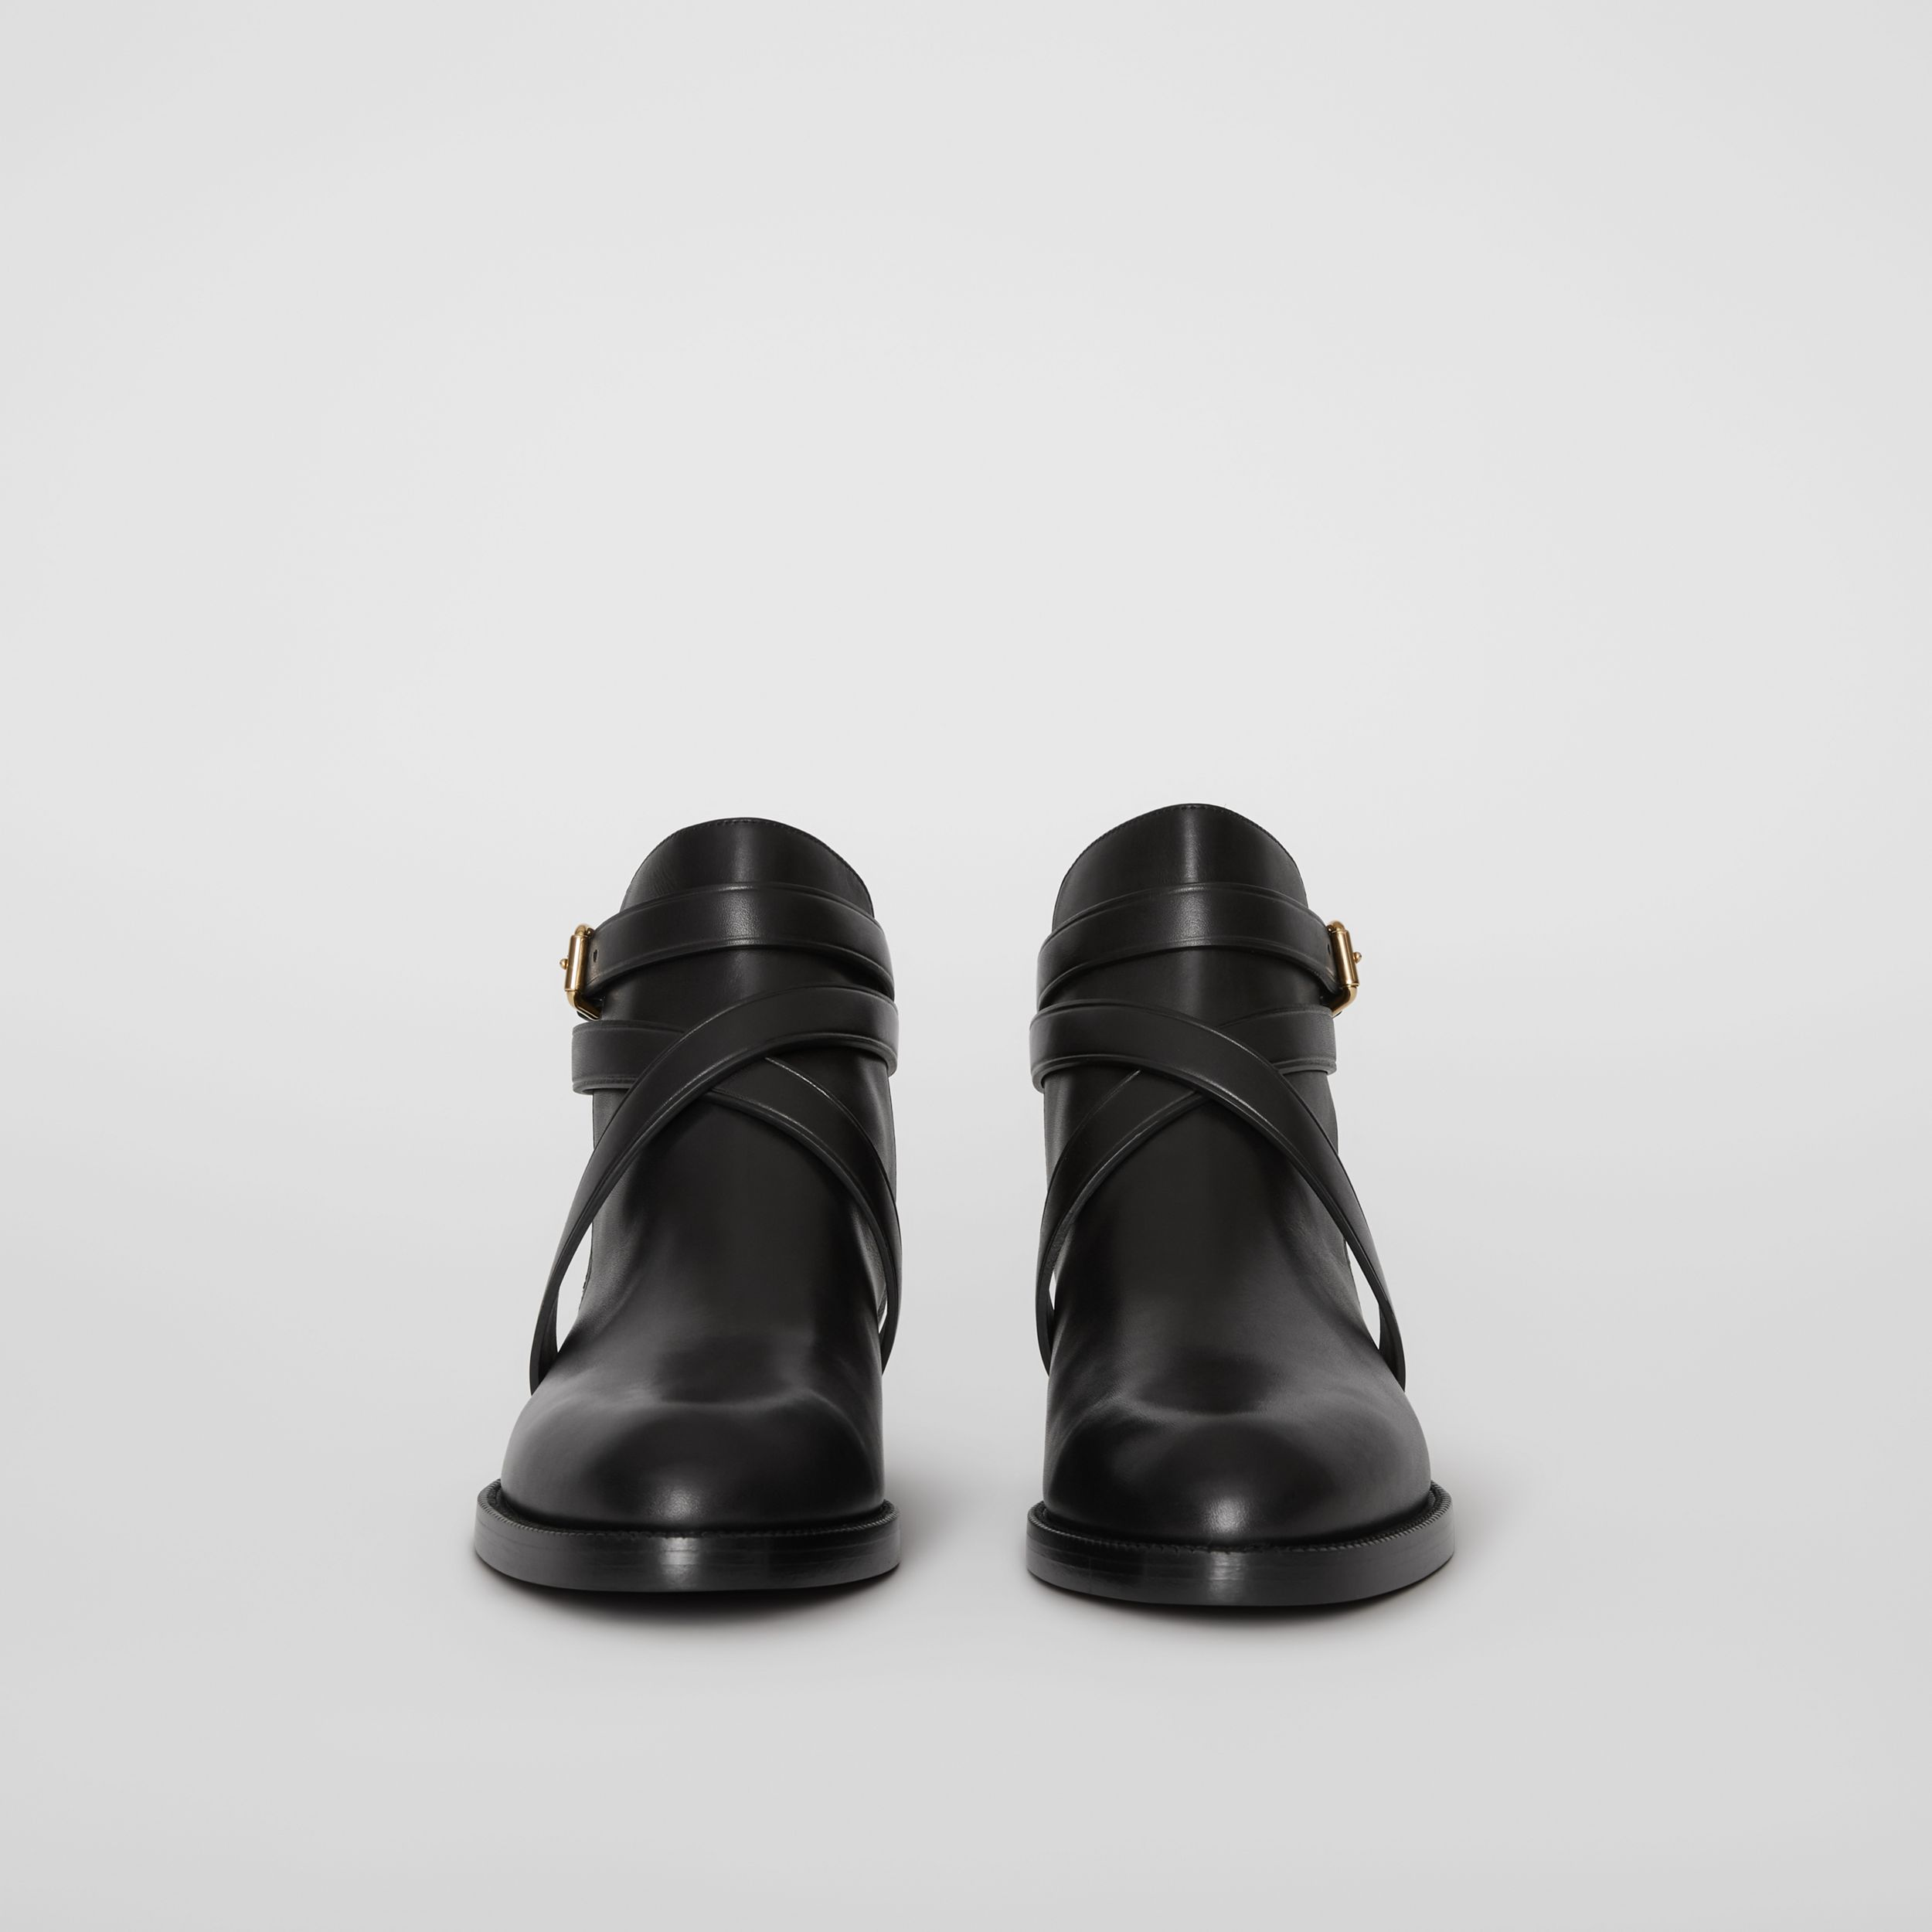 House Check and Leather Ankle Boots in Black - Women | Burberry United Kingdom - 4